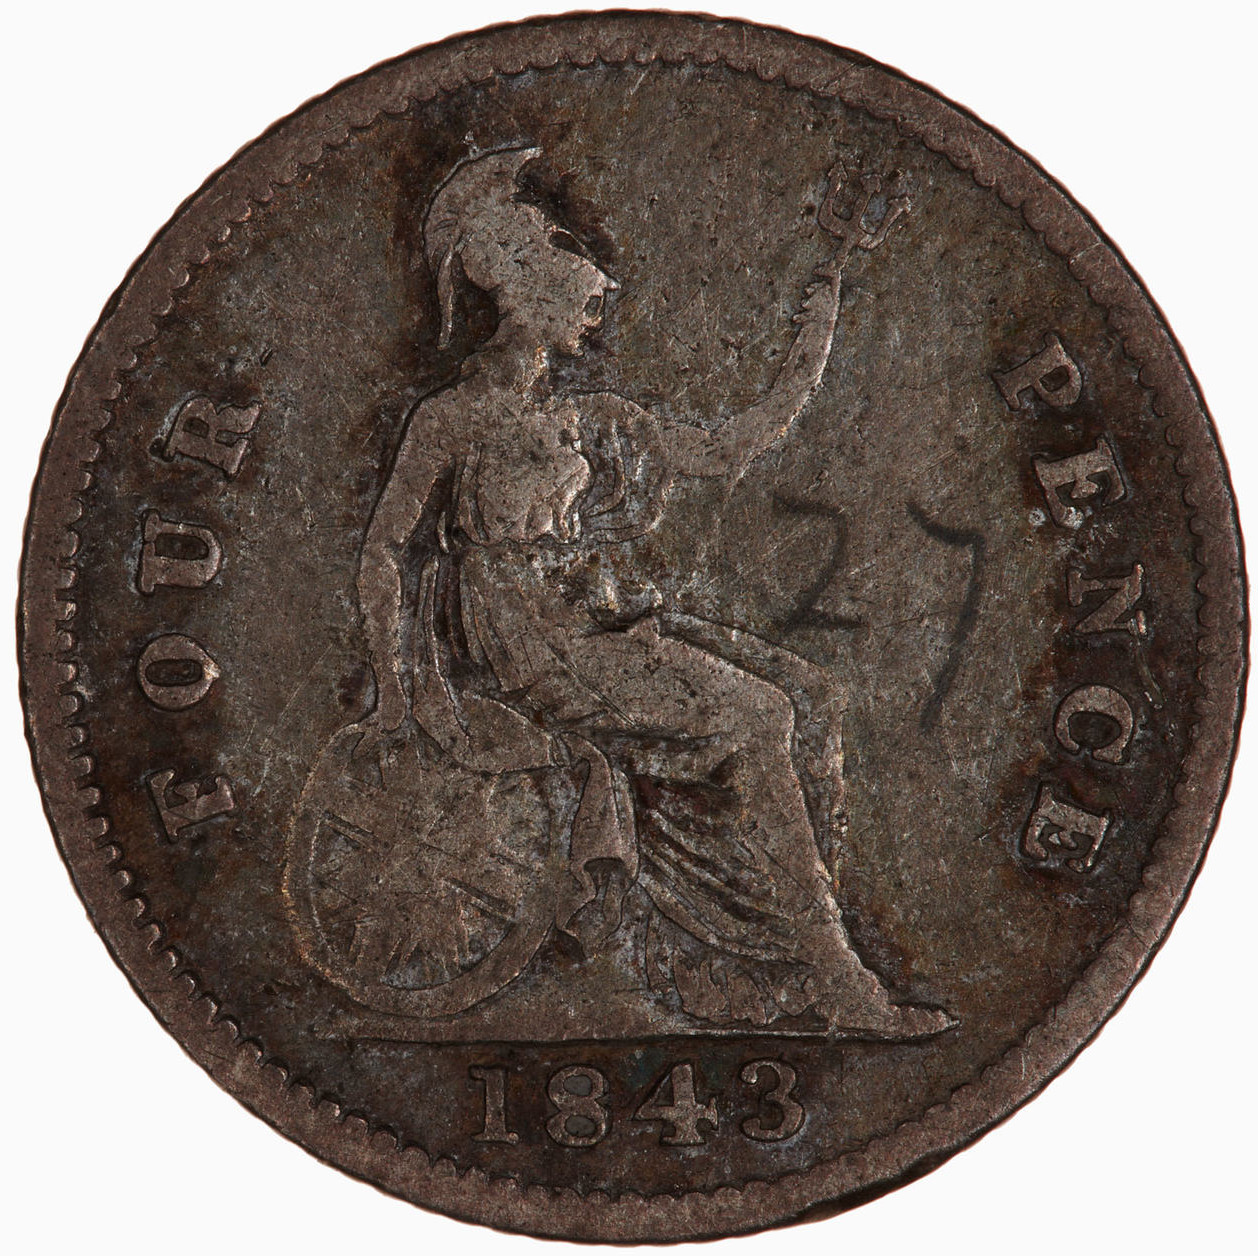 Fourpence 1843: Photo Coin - Groat, Queen Victoria, Great Britain, 1843